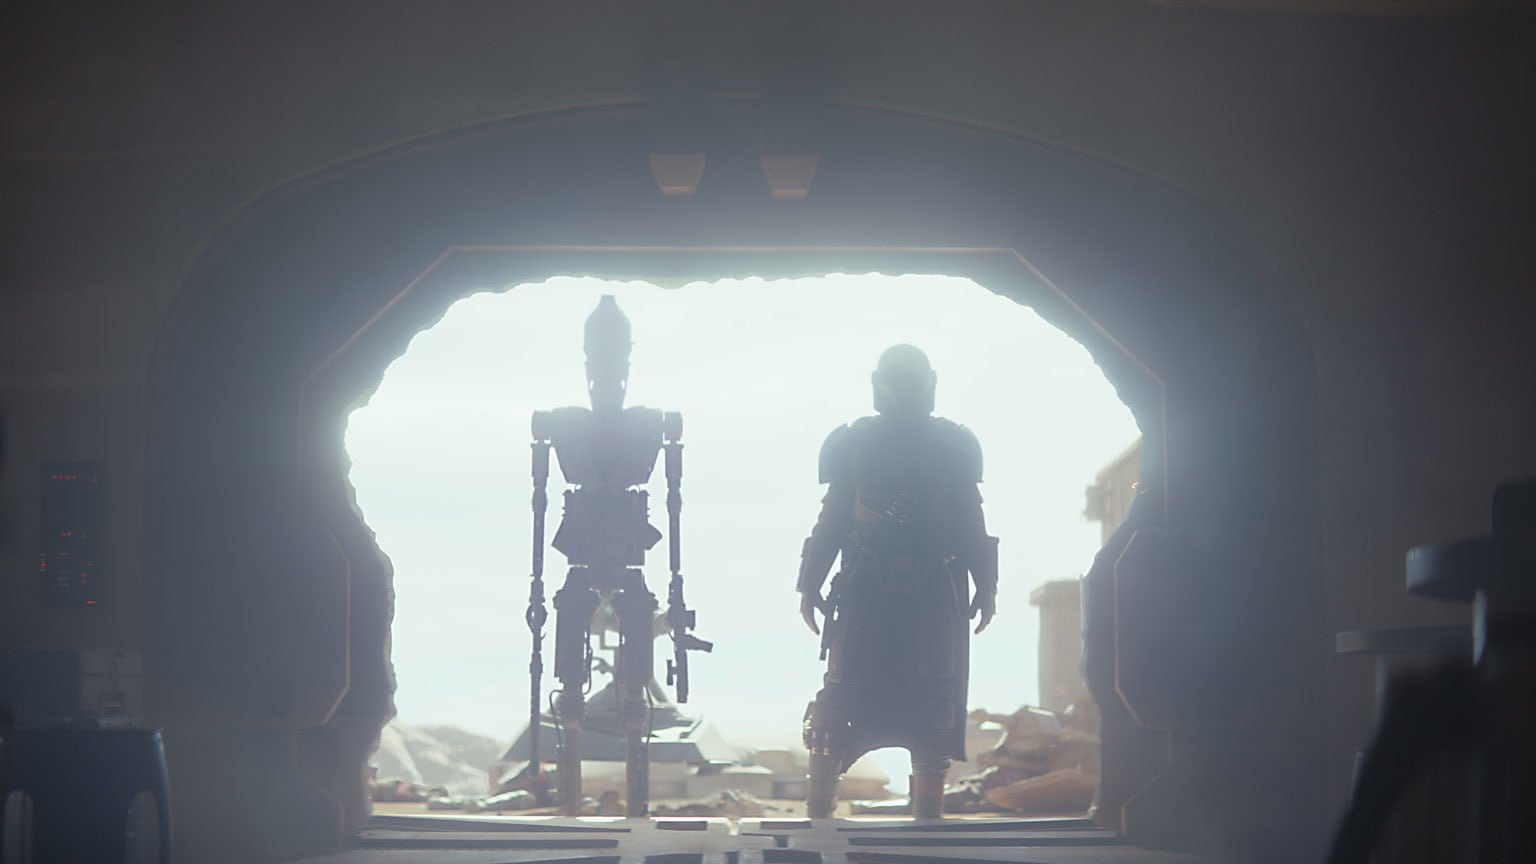 Poll: What Is Your Favorite Moment in the Mandalorian Trailer?